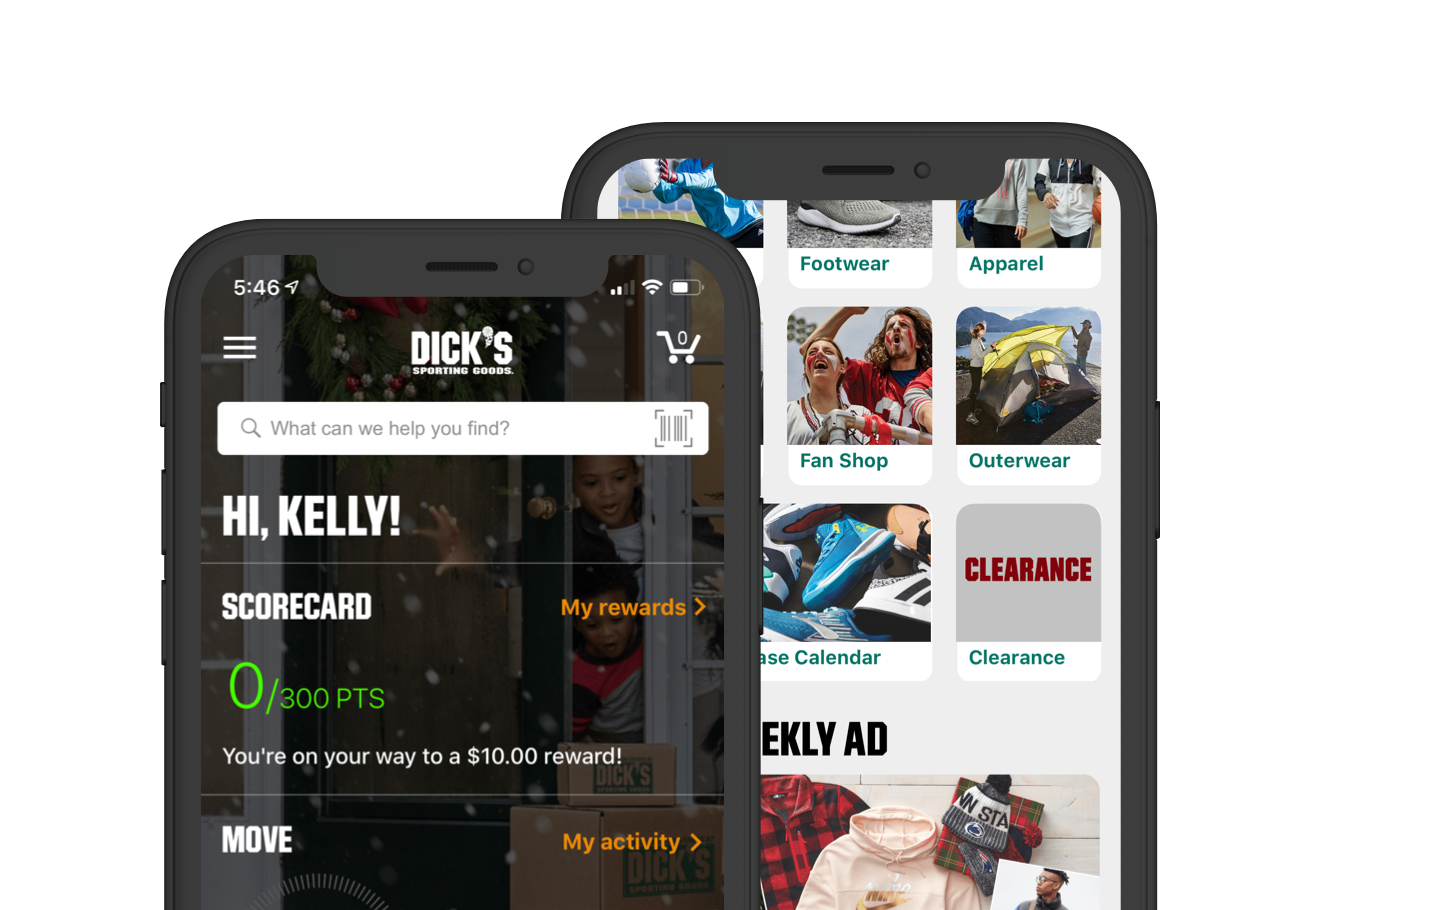 Dick's Sporting Goods - Mobile app design